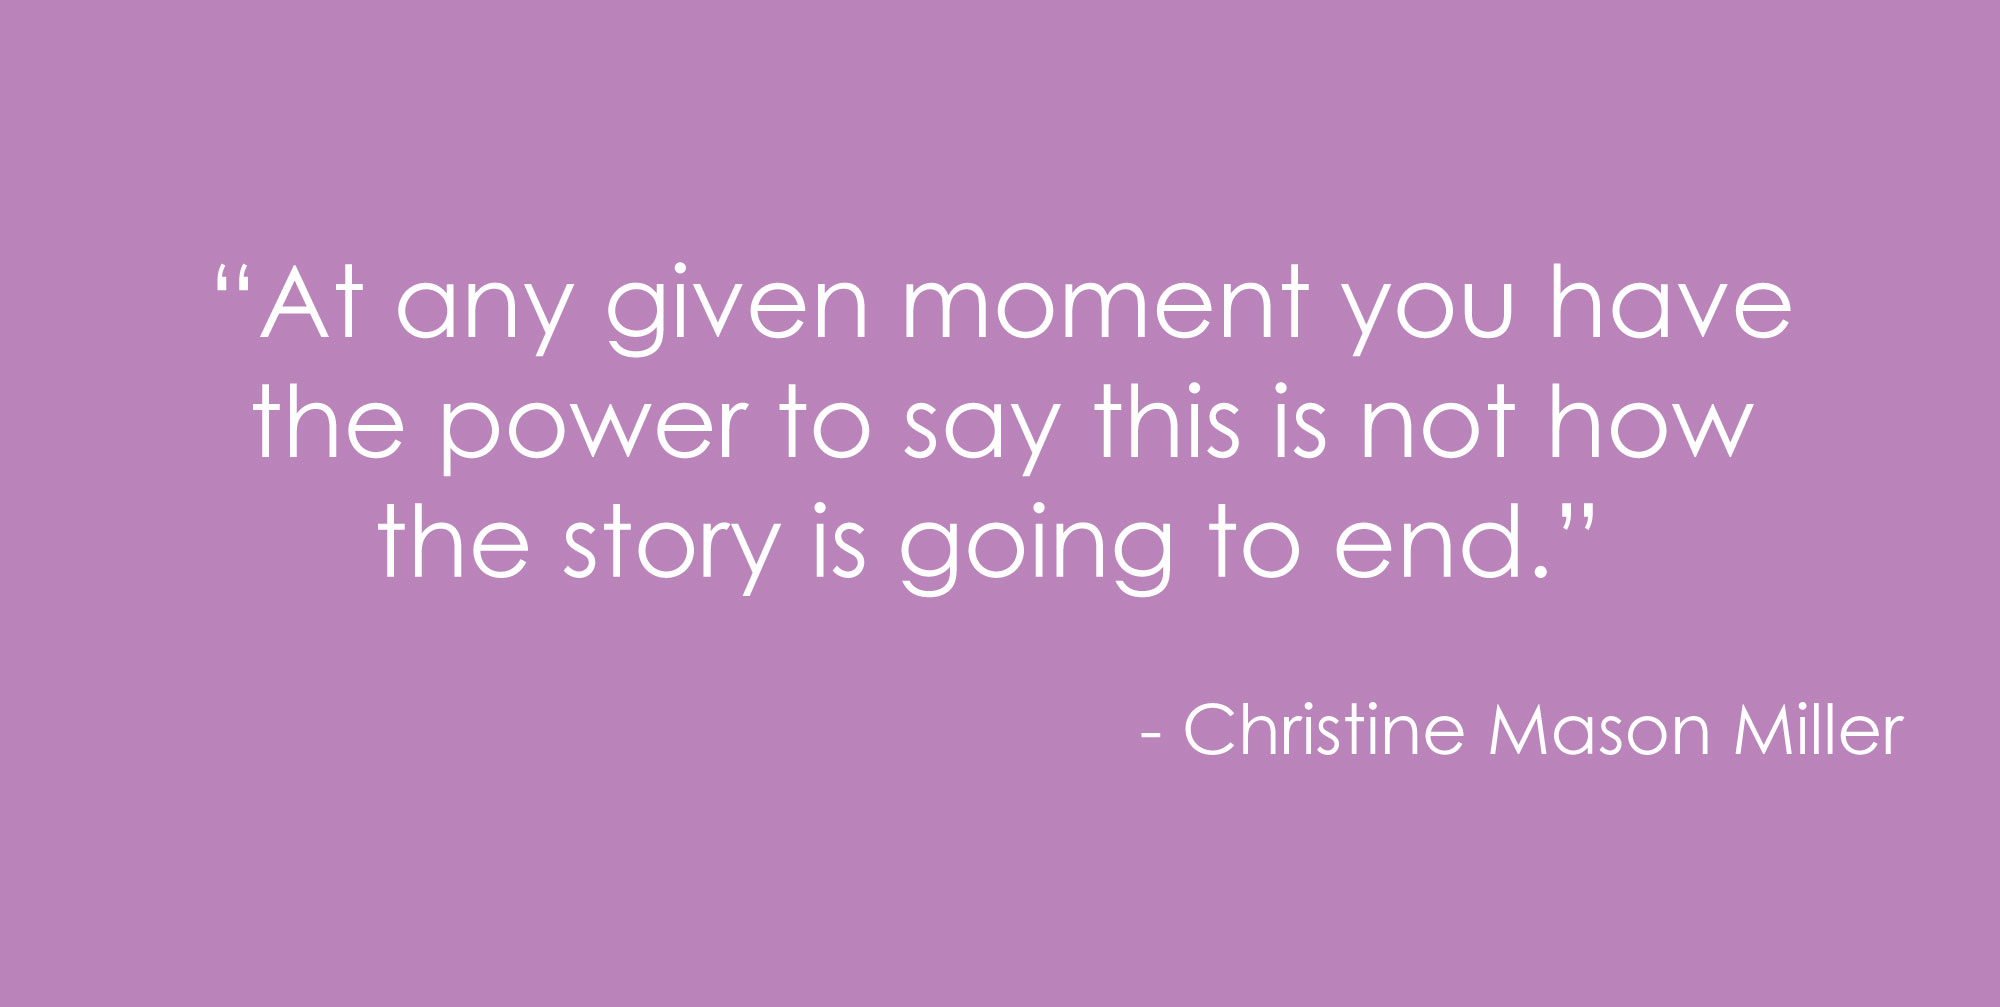 """At any given moment you have the power to say this is not how the story is going to end."" ― Christine Mason Miller"